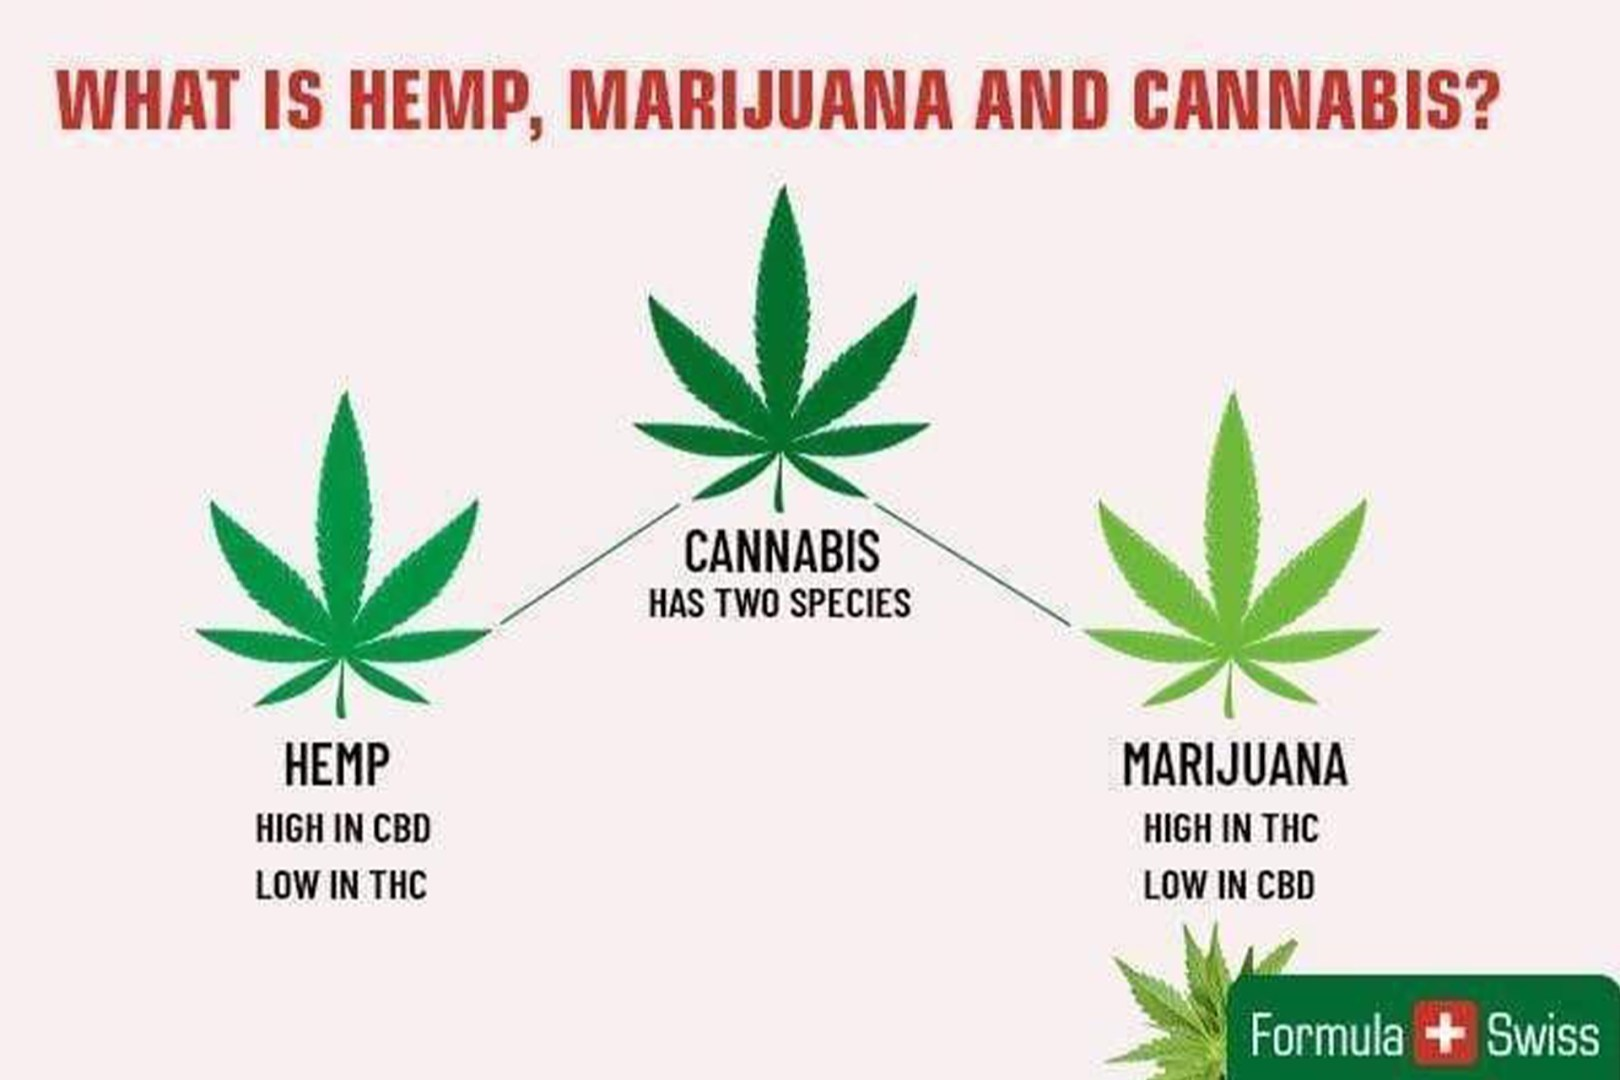 A graphic picture with a Hemp leaf, a Cannabis leaf, and a Marijuana leaf with text asking: What is Hemp, Marijuana, and Cannabis?